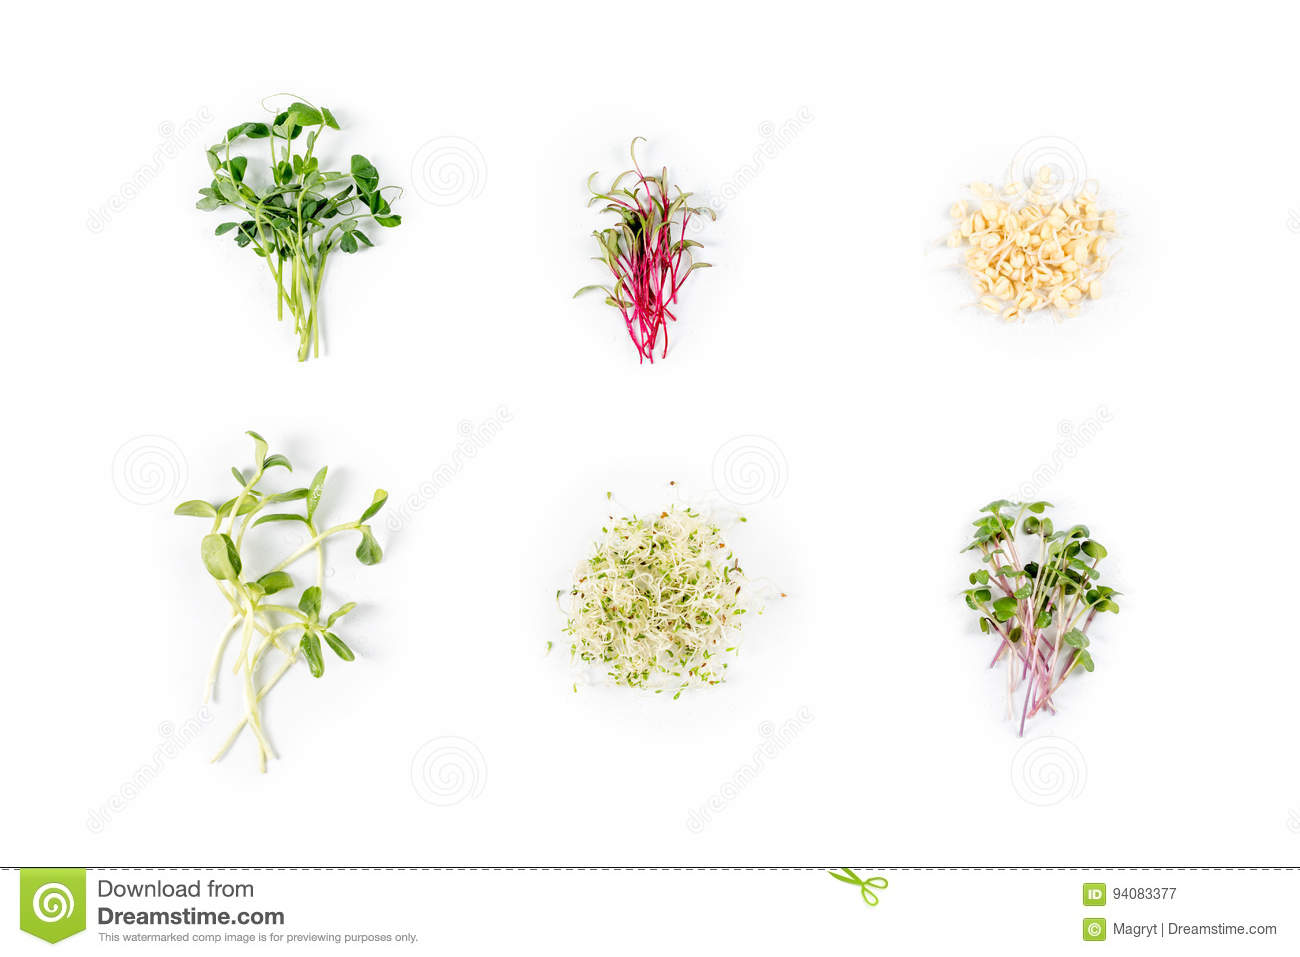 Different Types Of Micro Greens On White Background Healthy Eating